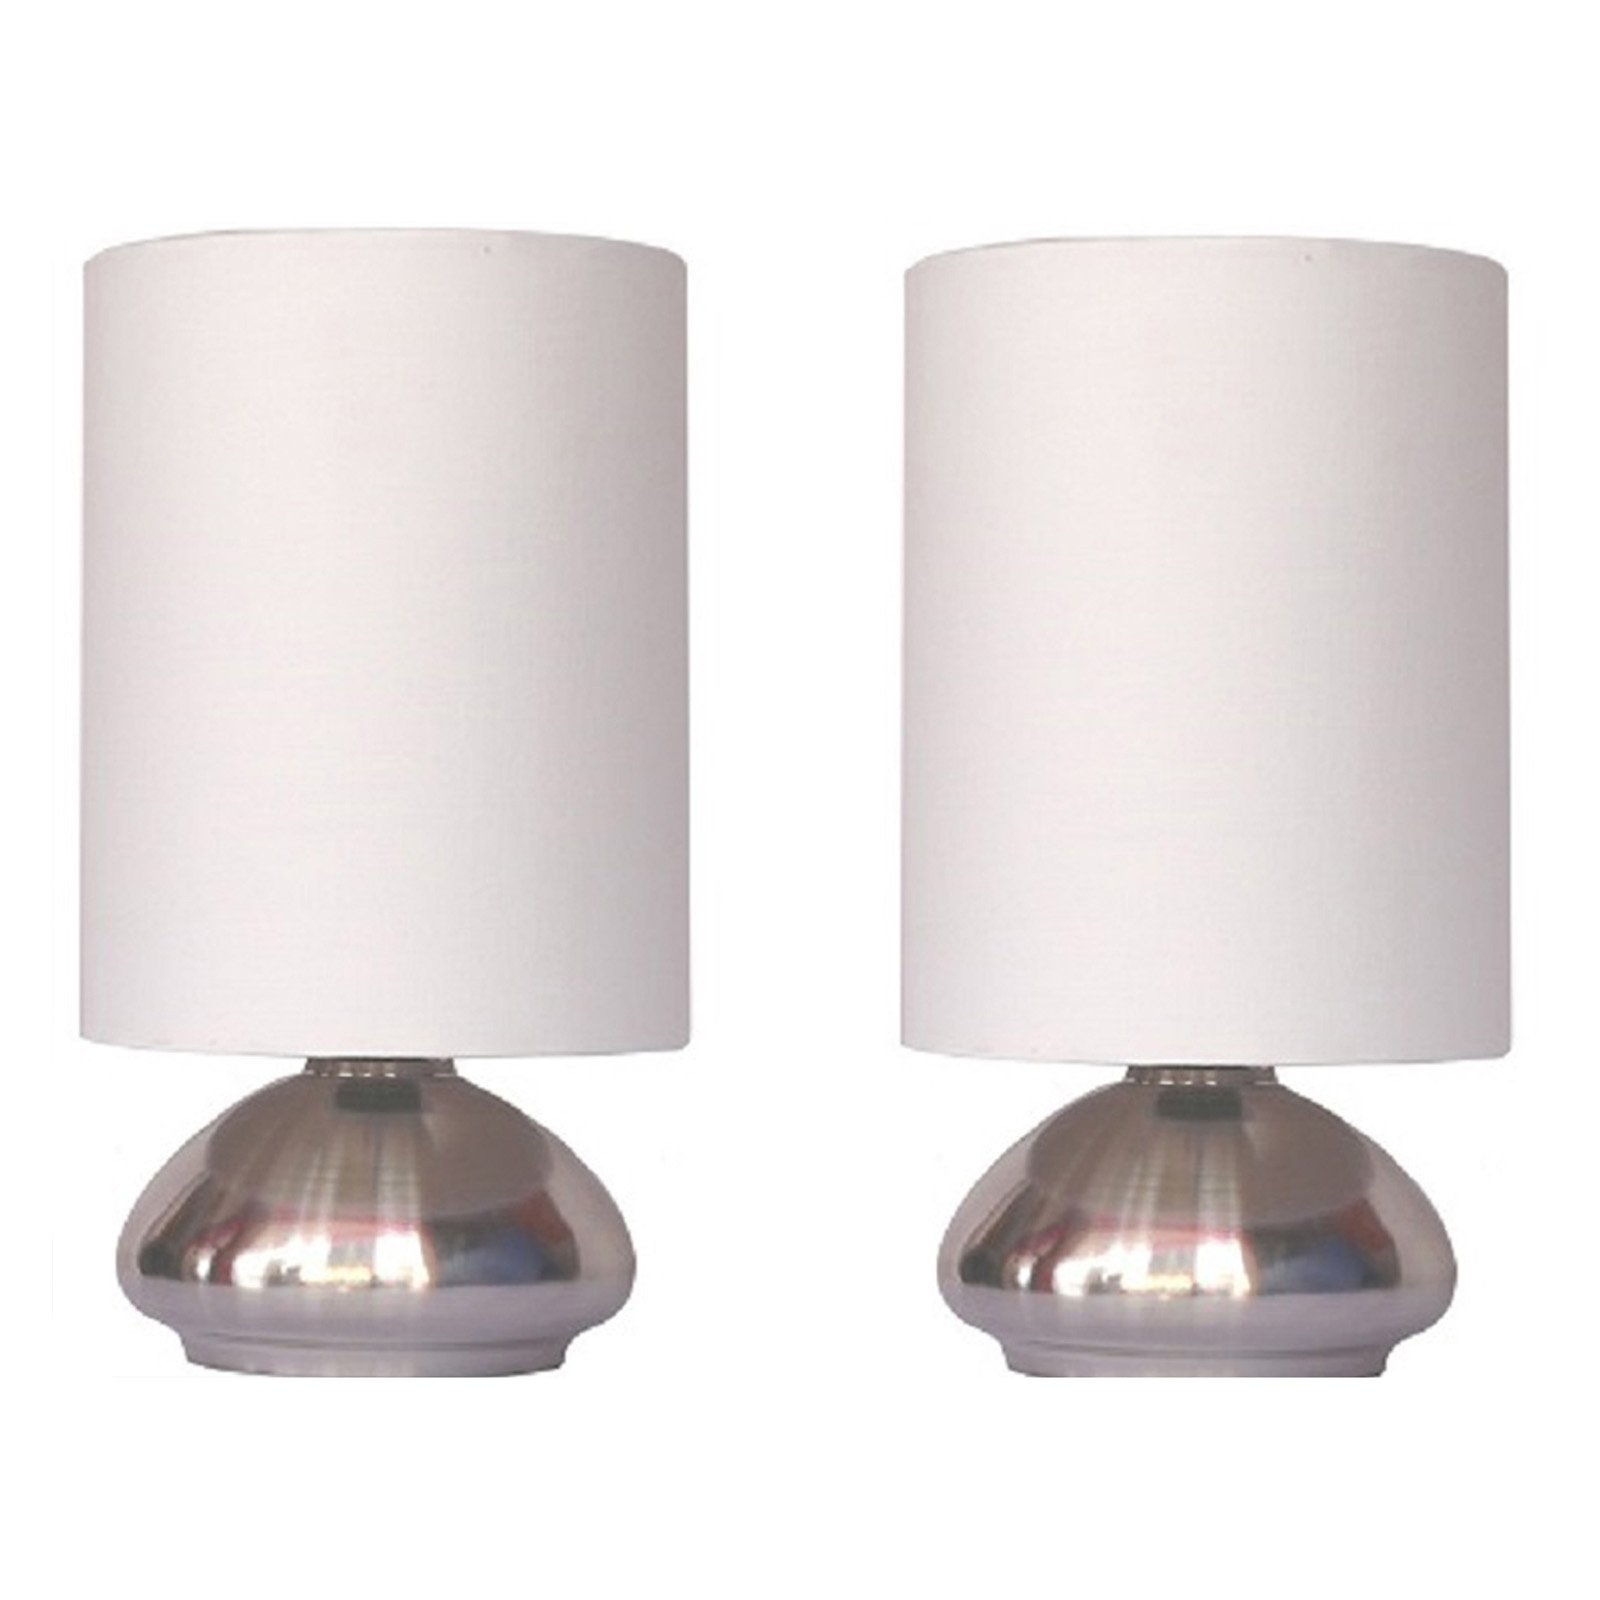 Simple Designs Gemini Mini Touch Table Lamp Set With Fabric Shades